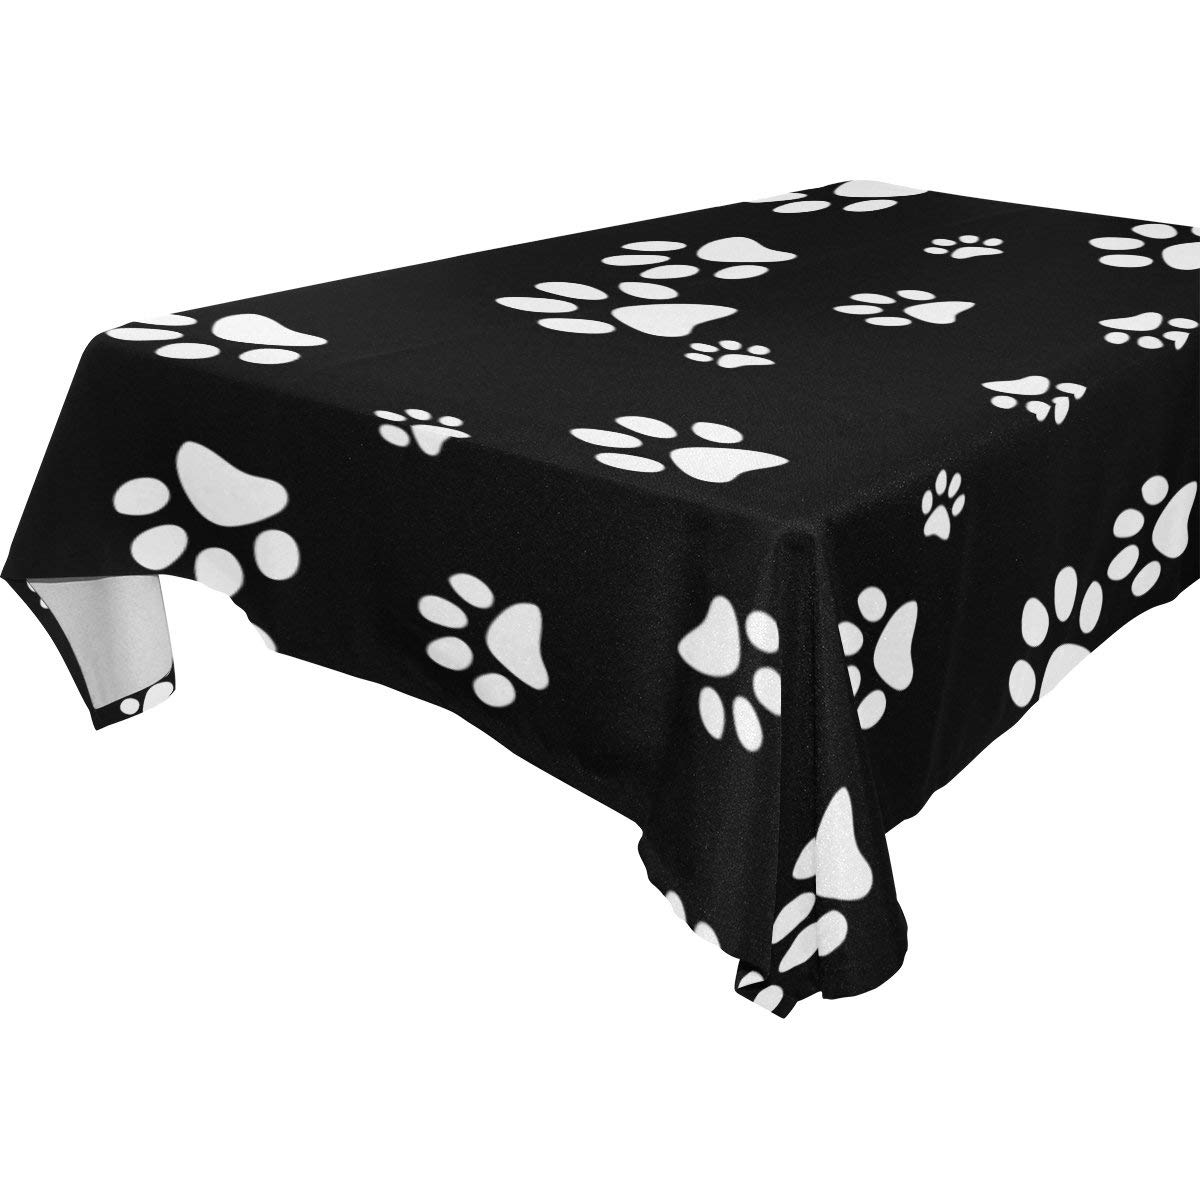 WOZO Rectangular Cute Puppy Pug Dog Paw Print Tablecloth Table Cloth Cover for Home Decor Dinner Kitchen Party Picnic Wedding Halloween Christmas 54x54 inch